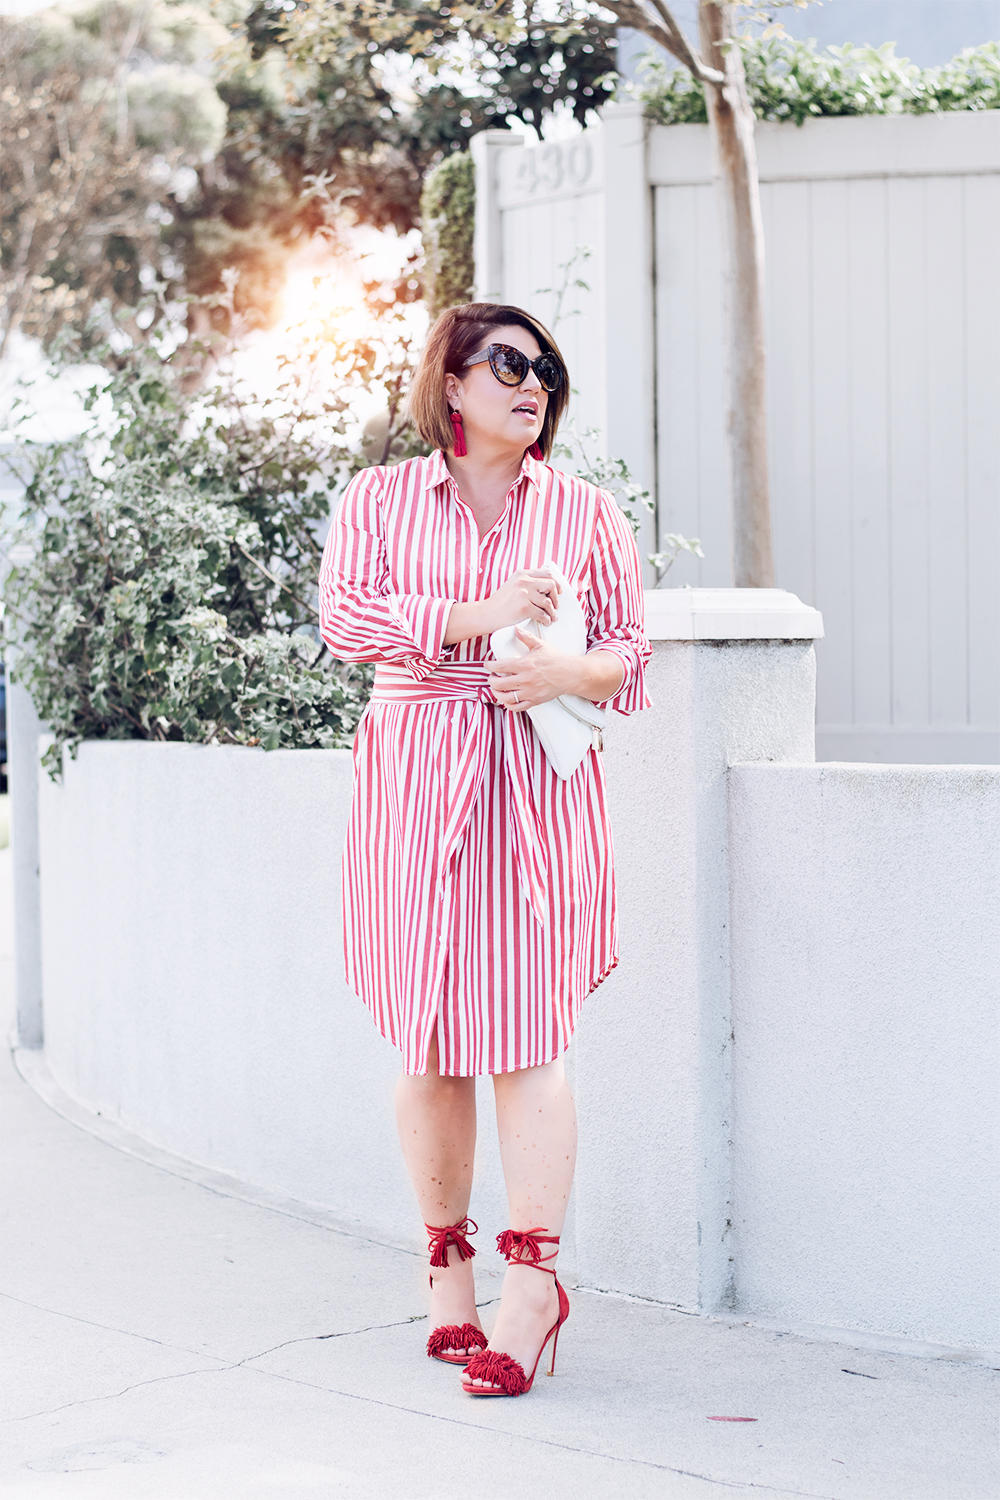 Red Stripes for Summer Striped Red Dress Who What Wear Street Style Looks to Copy in 2018 Barefoot in LA Fashion Blog Style Ideas Outfits0145